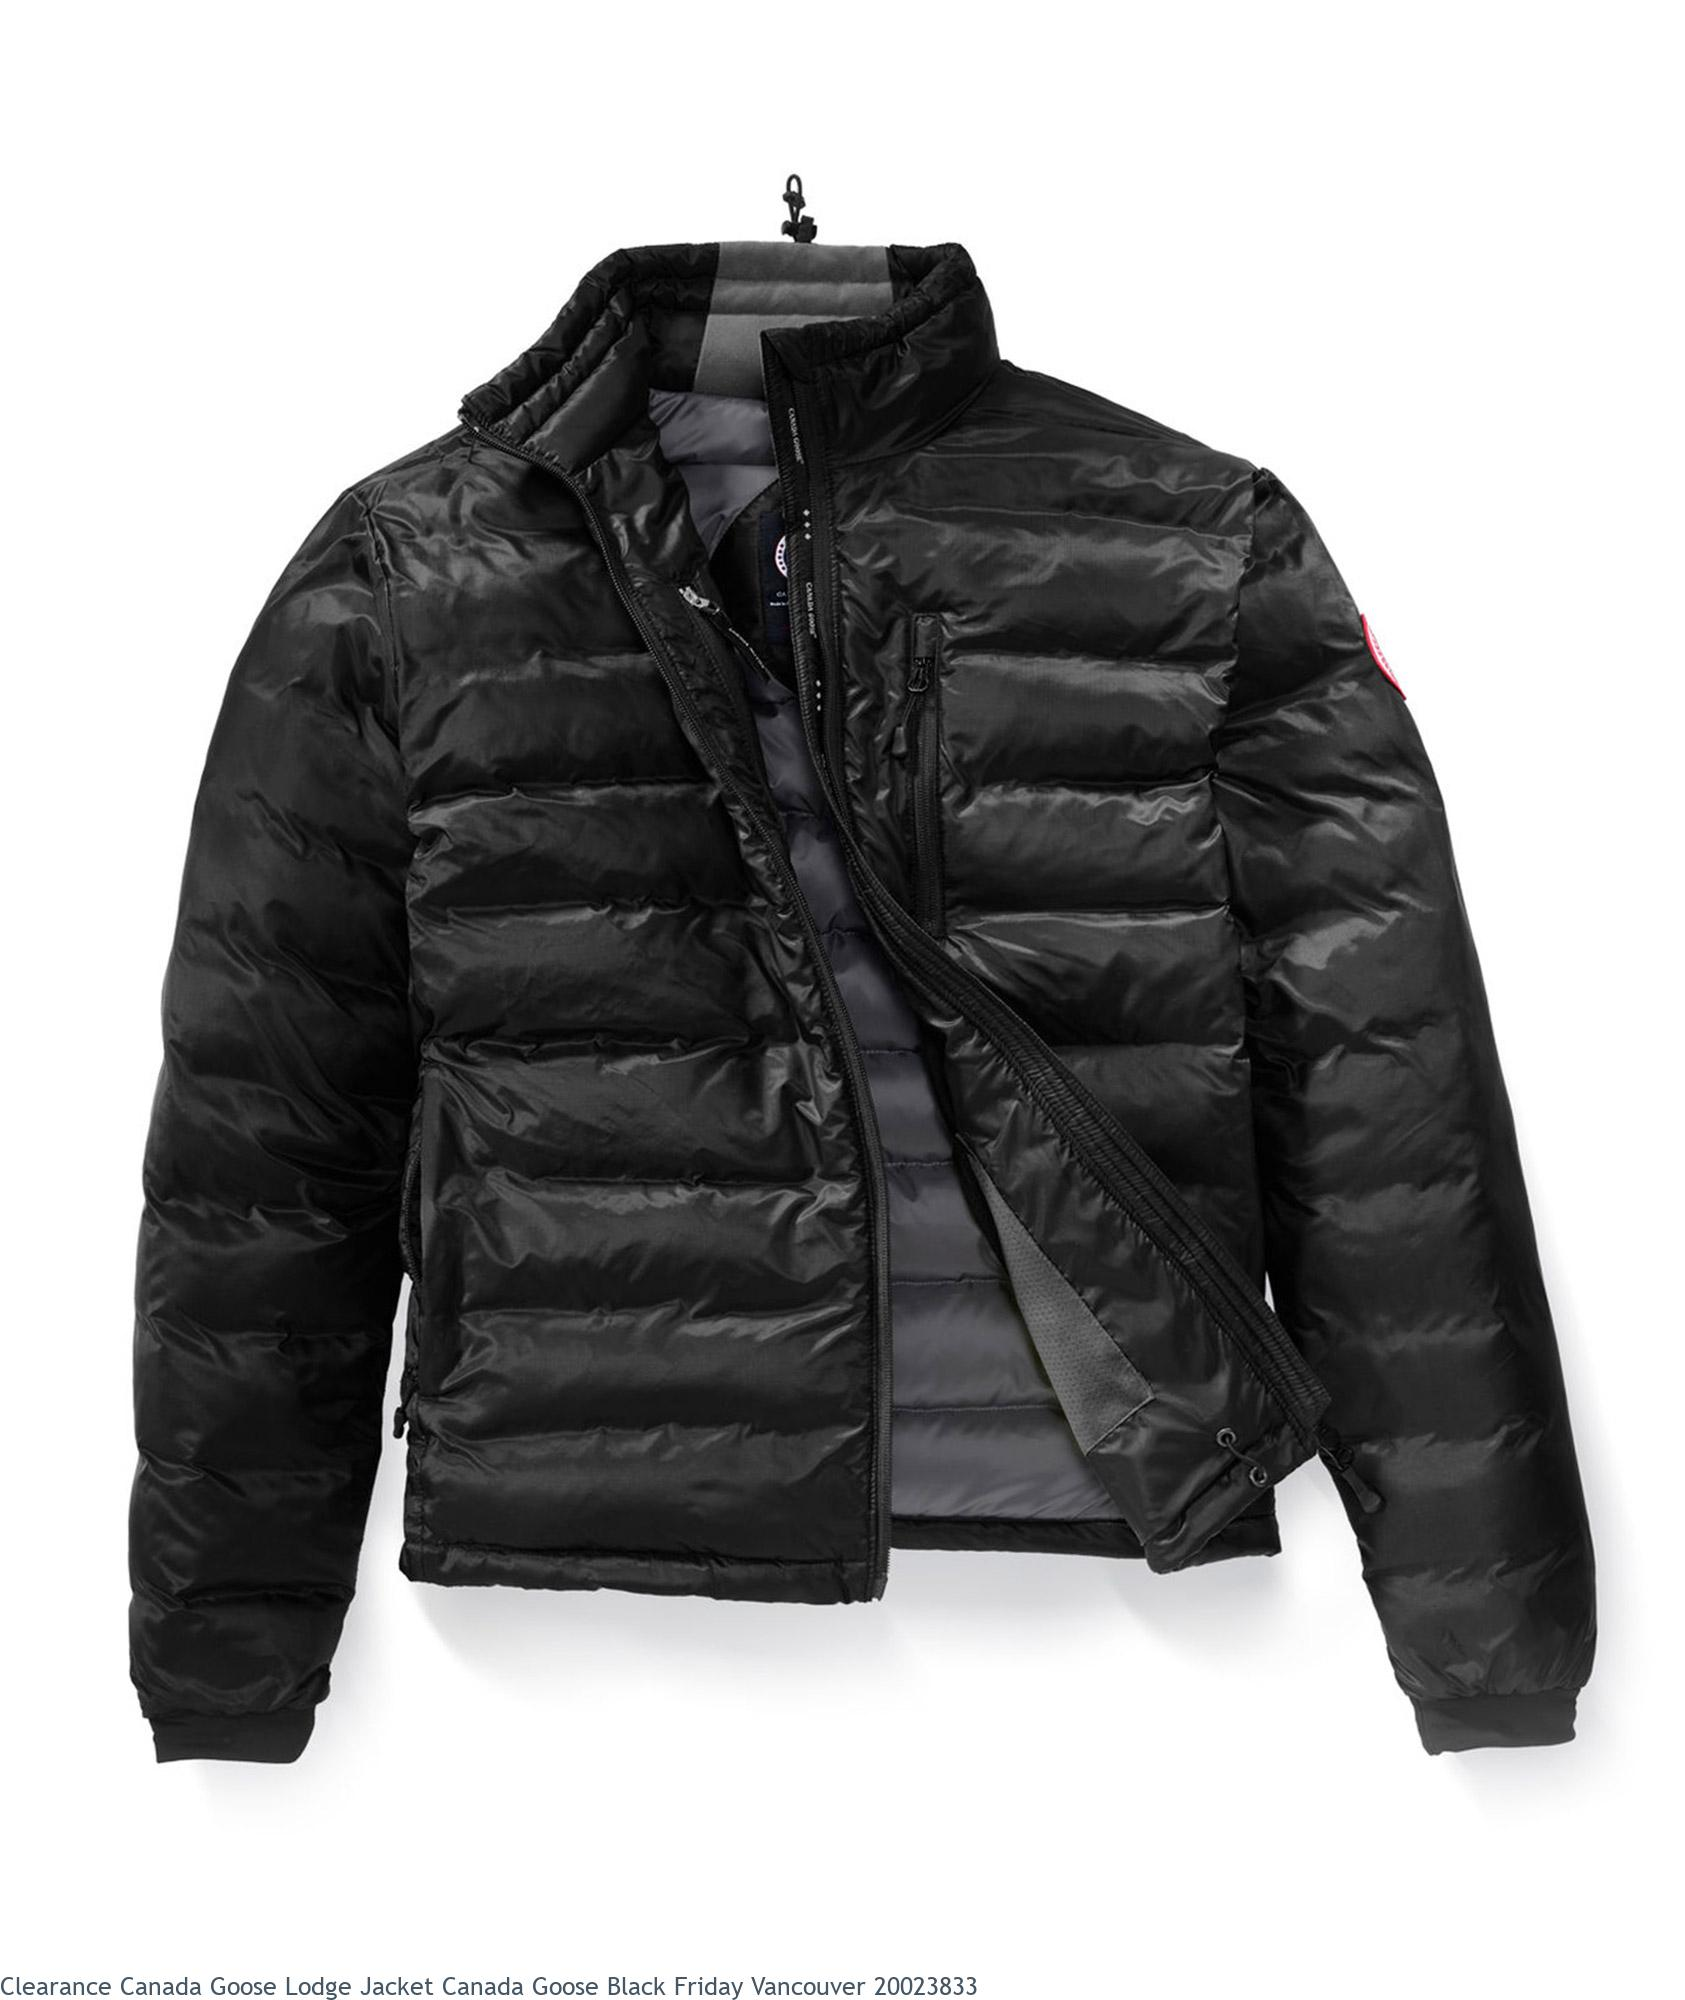 3727f2e0860 Clearance Canada Goose Lodge Jacket Canada Goose Black Friday Vancouver  20023833 – Cheap Canada Goose Jackets Outlet Sale Online Store Free  Shipping- Up To ...